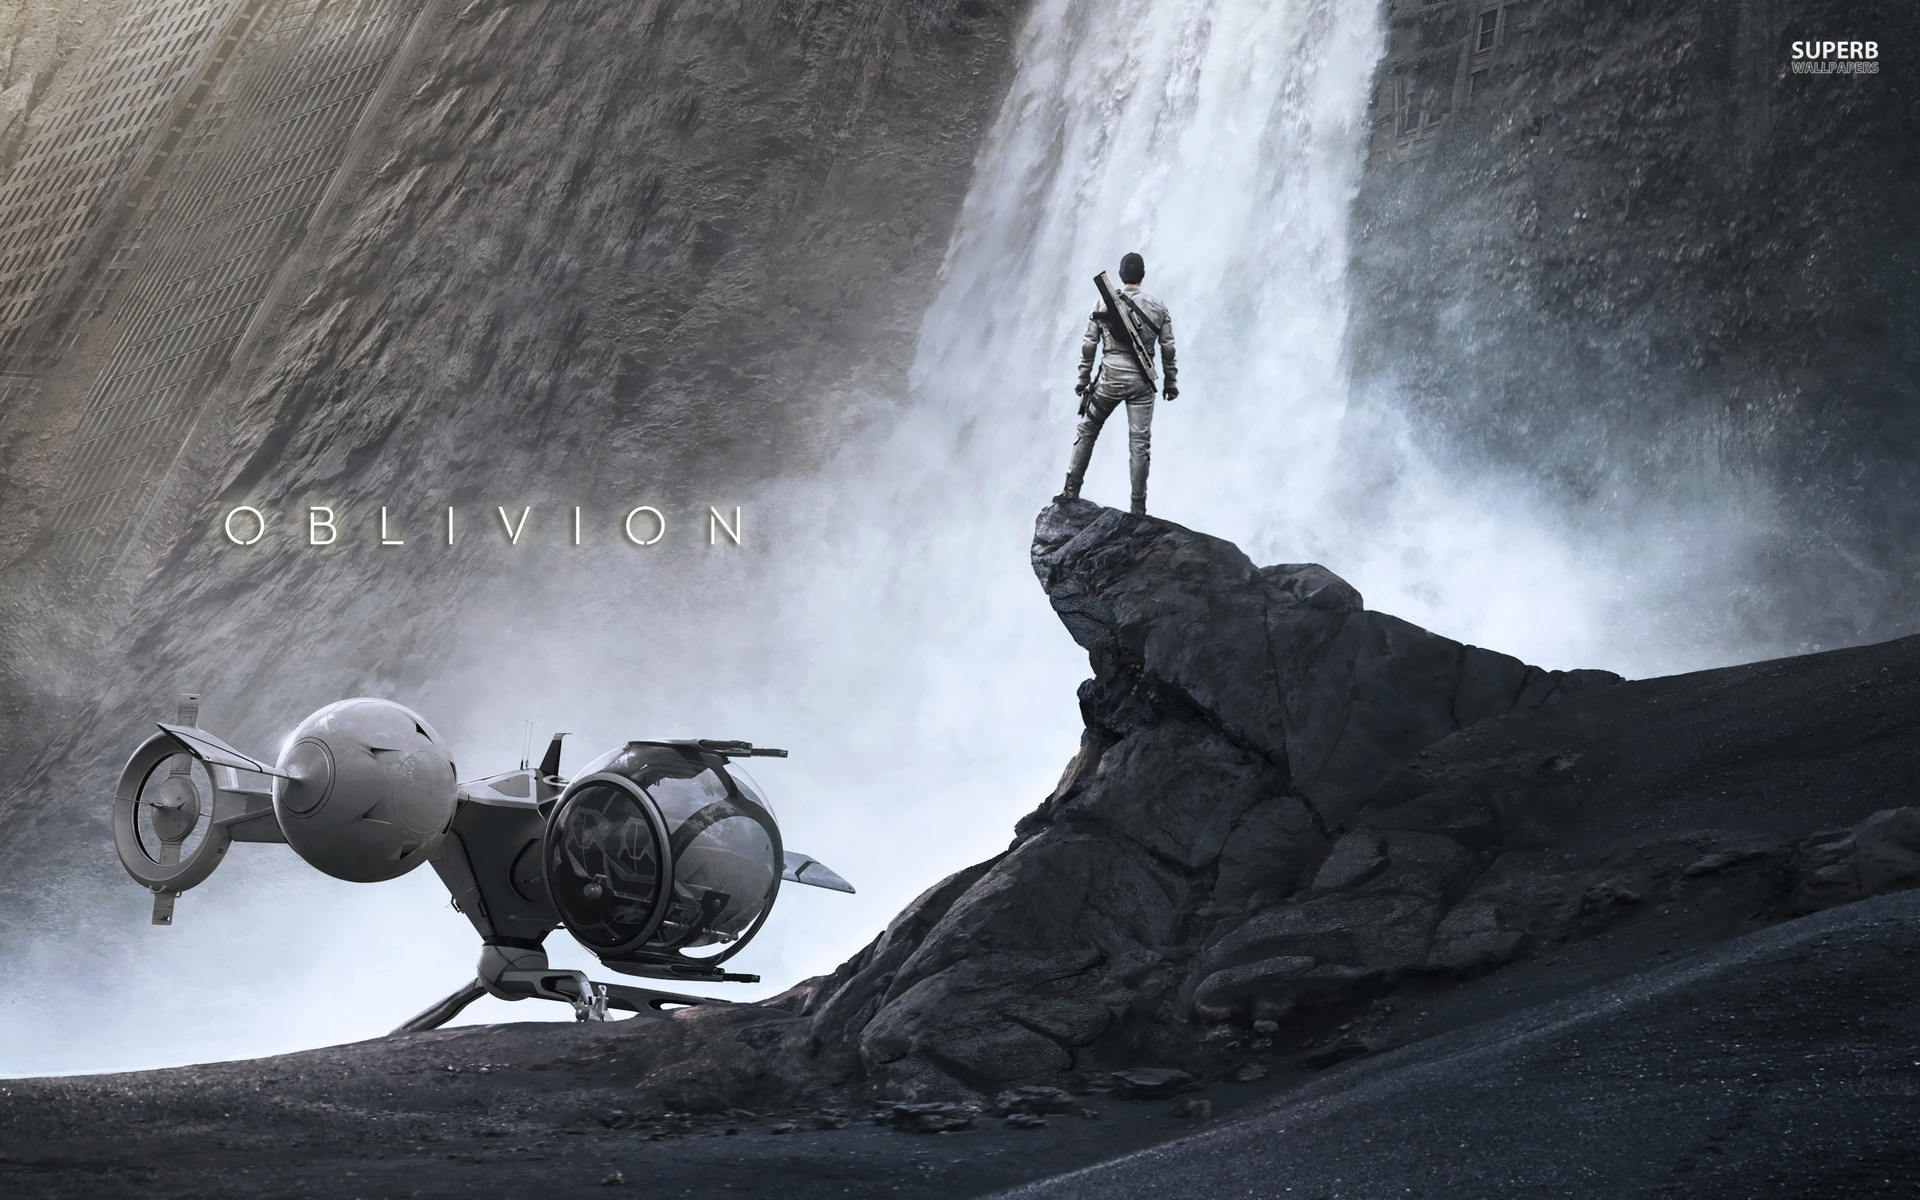 Download Tom Cruise Oblivion Wallpapers [1920x1200] 70 Oblivion 1920x1200